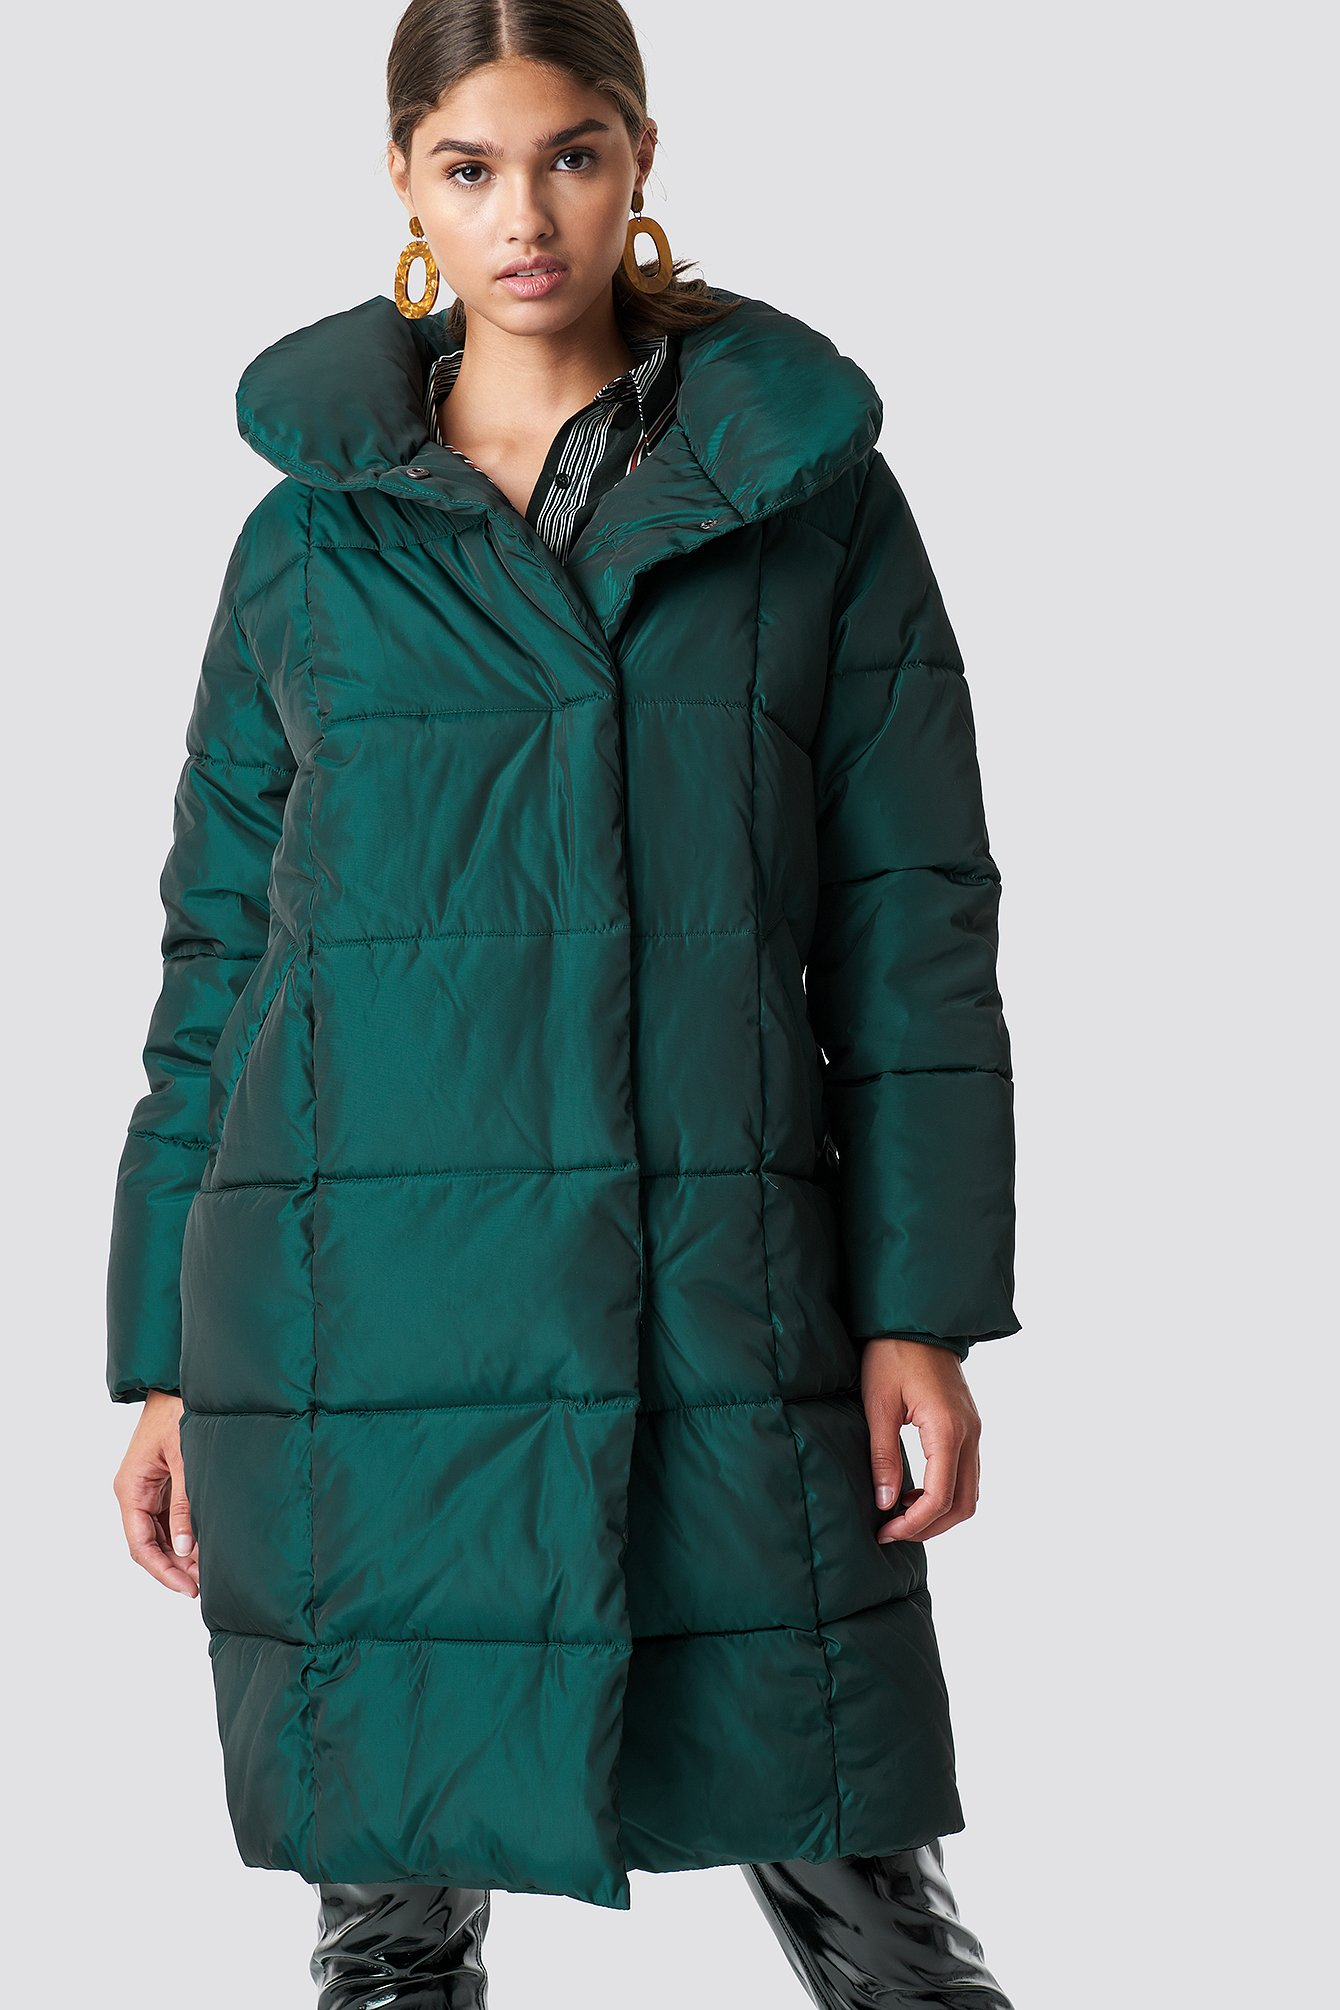 na-kd trend -  Shawl Collar Shiny Padded Jacket - Green